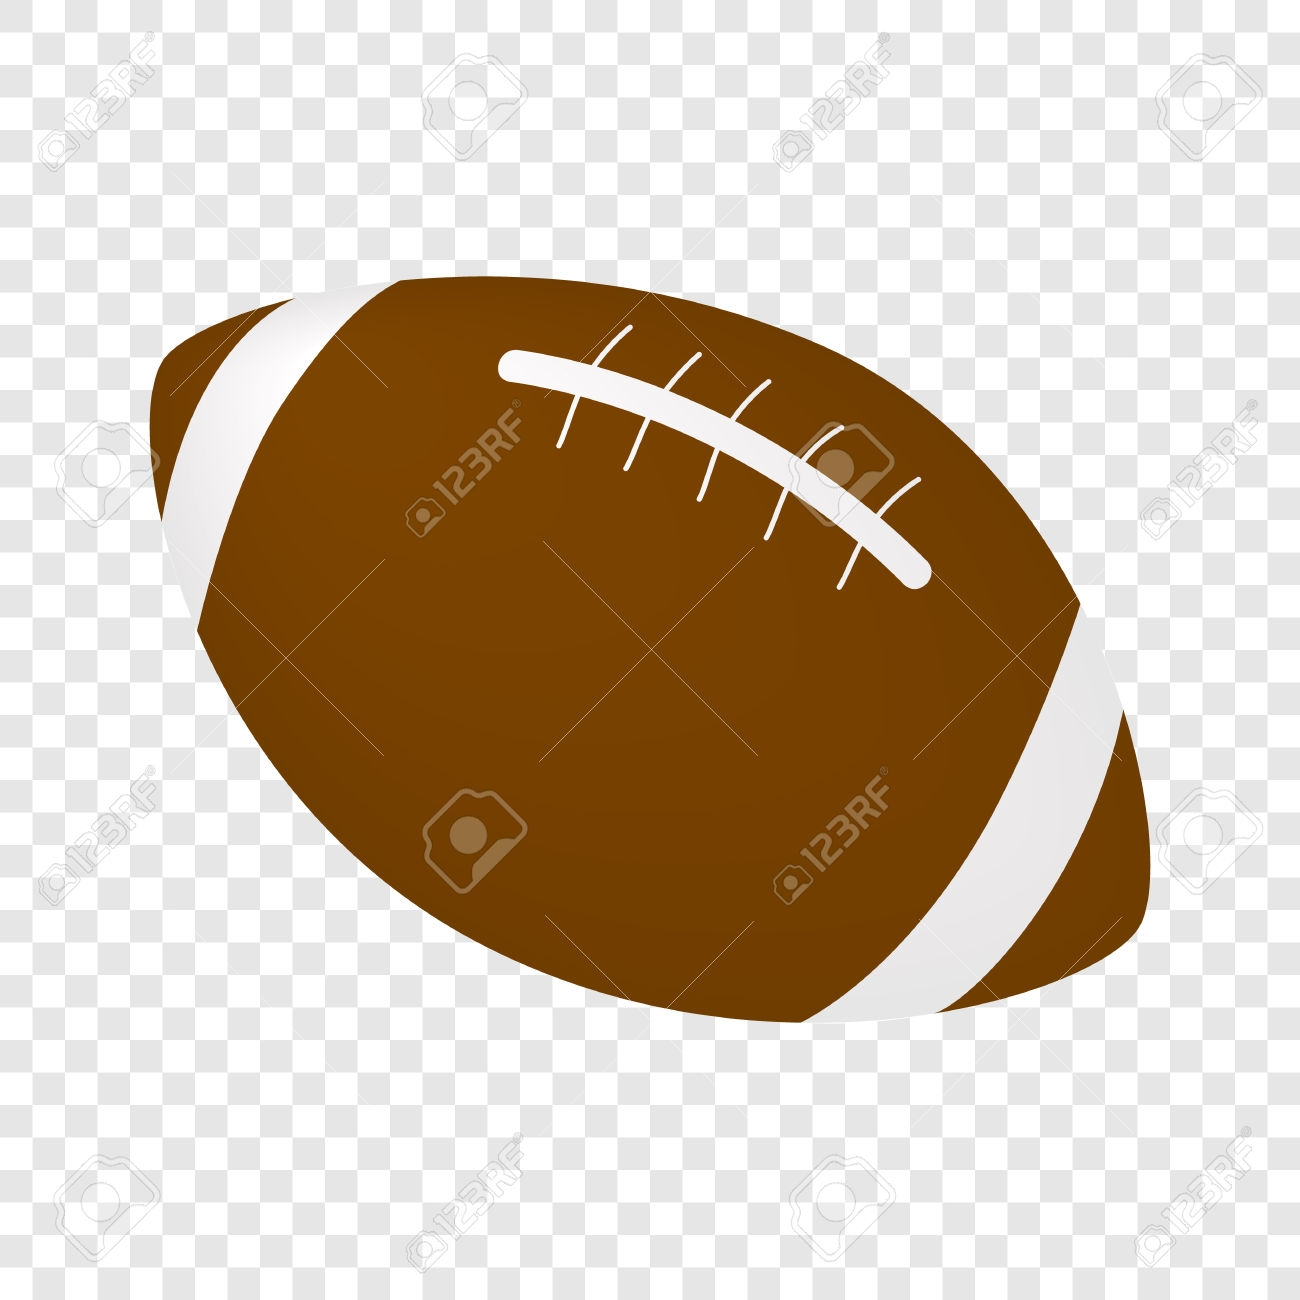 Football clipart clear background Background clipart Collection Football of